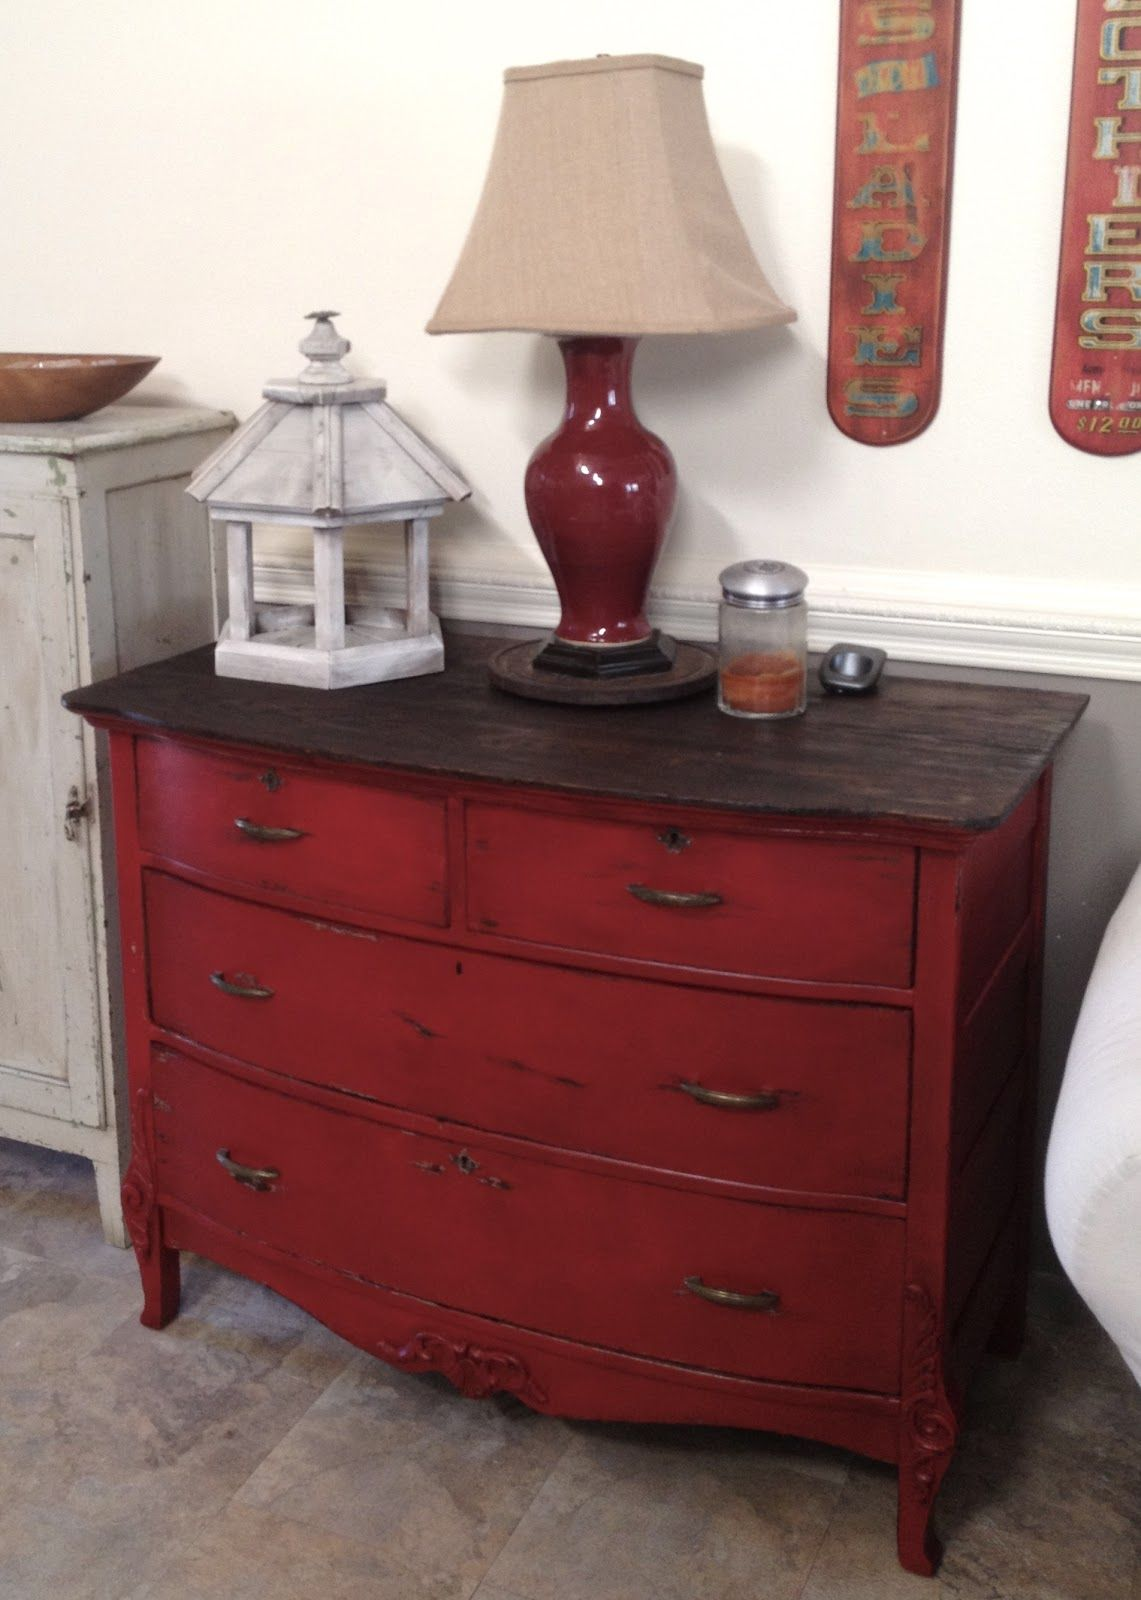 152nd Power Of Paint Party Popp Spotlight Dresser Labour And Paint Furniture